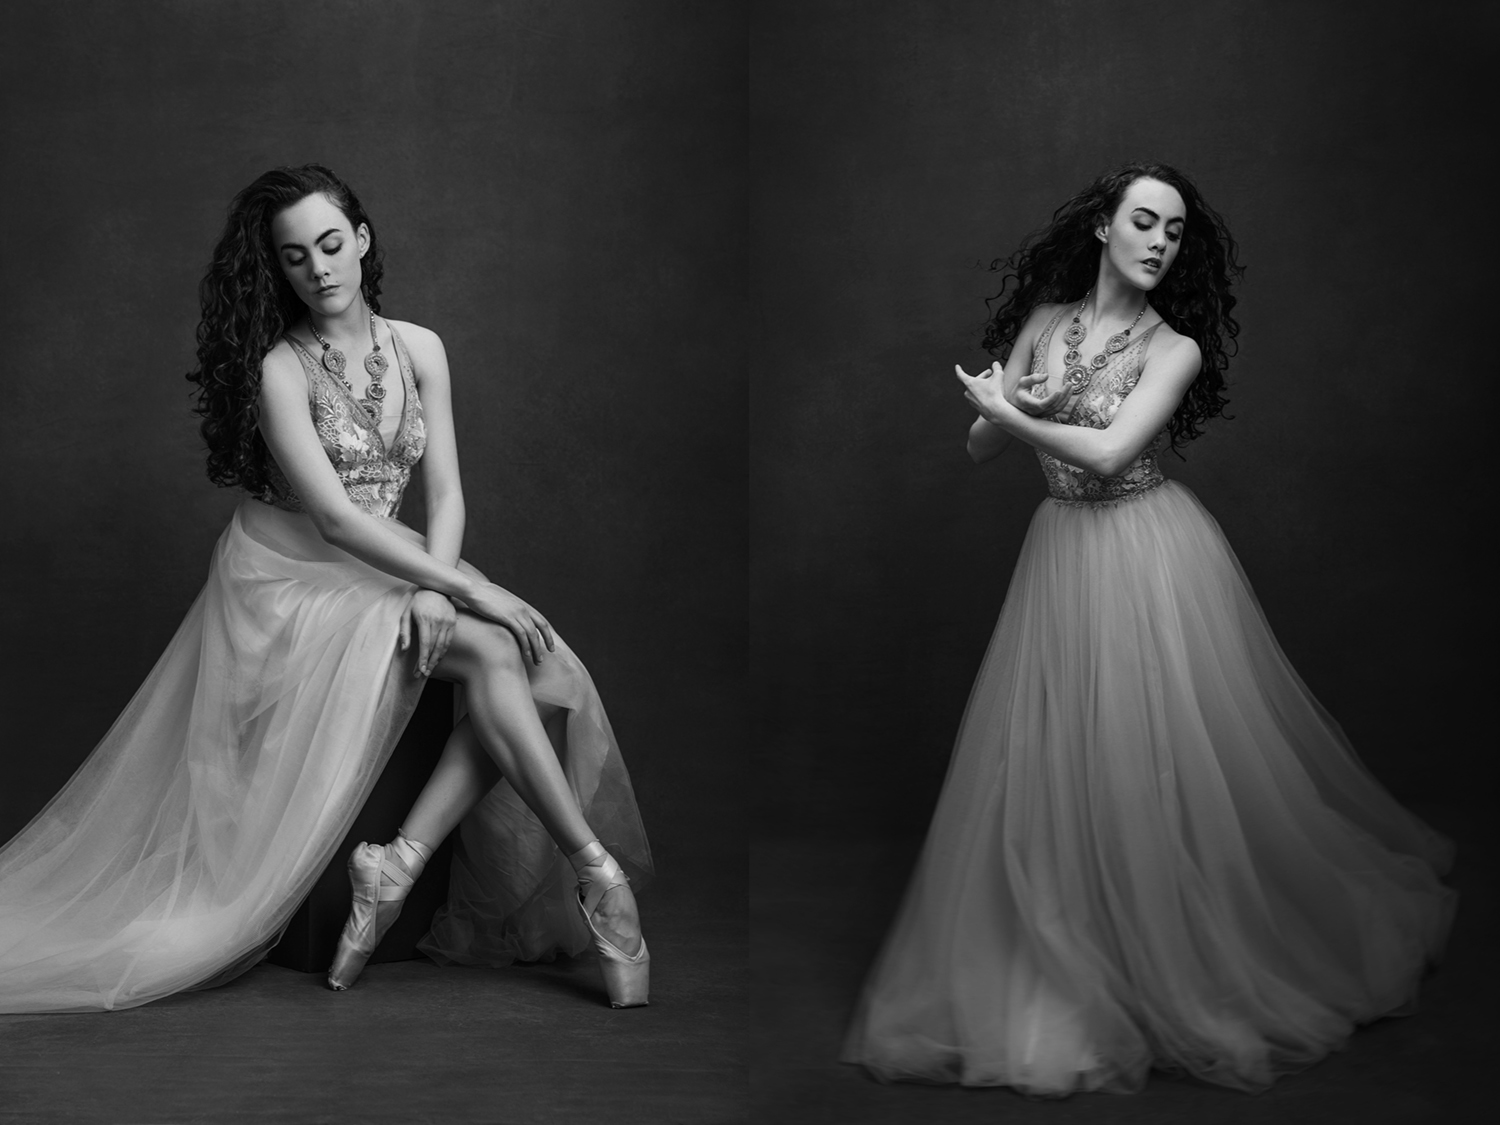 Classic Fine art Portraiture of Sacramento Ballet Dancer by Mayumi Acosta Photography.jpg